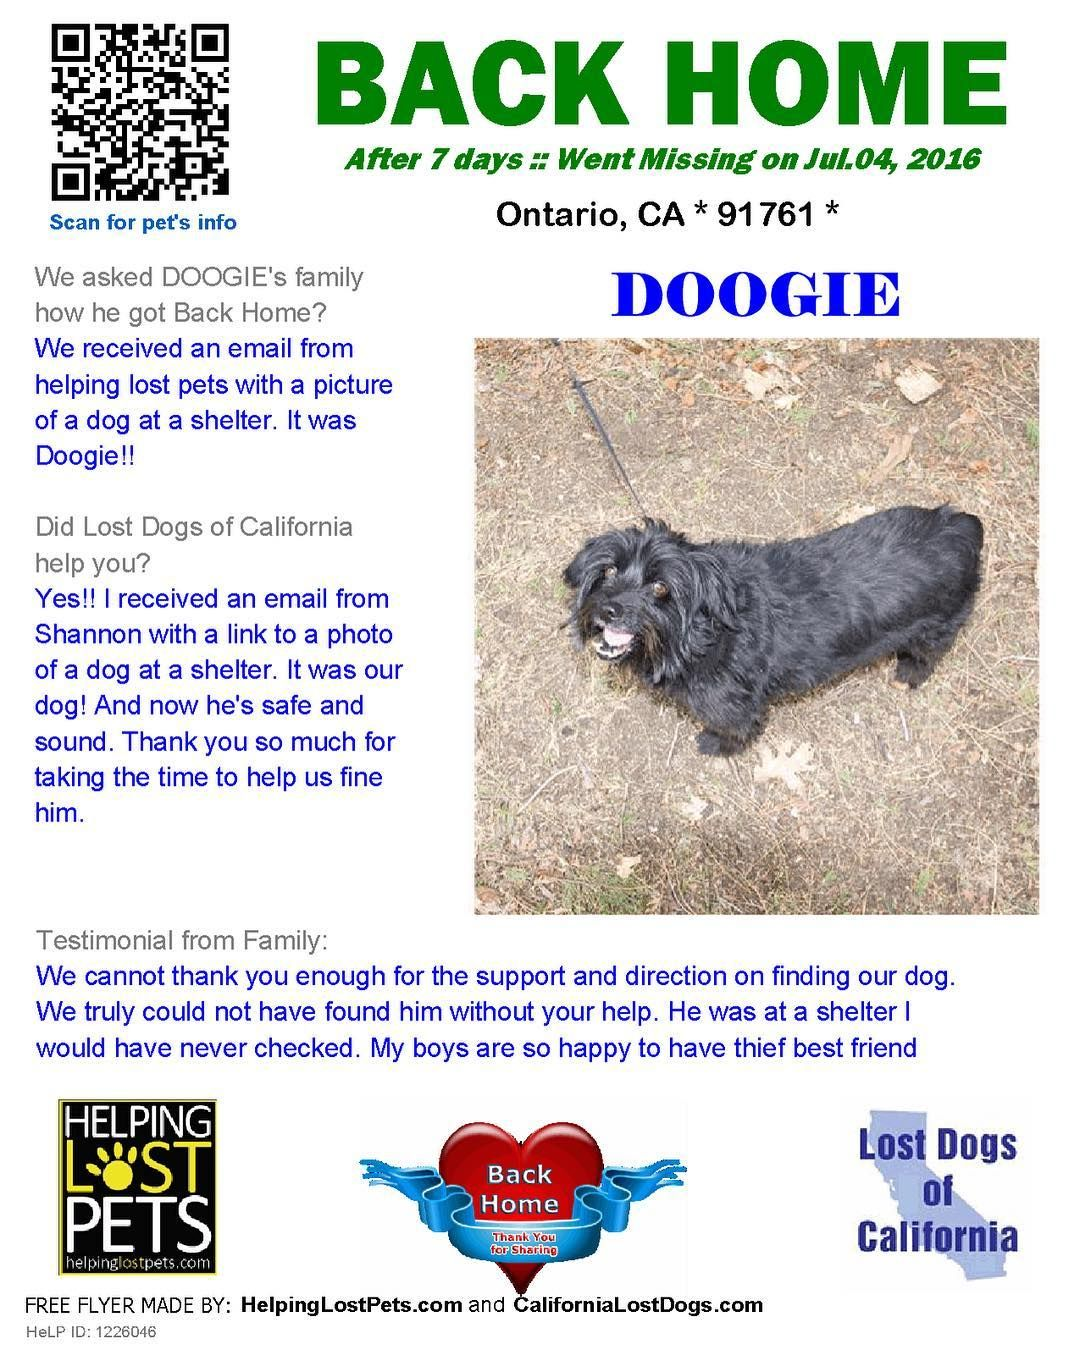 Backhome Doogie Spaniel Mix From Ontario Ca Has Been Reunited With His Family Lost Jul 04 2016 Back Home Jul 11 2016 With Images Losing A Dog Losing A Pet Dogs